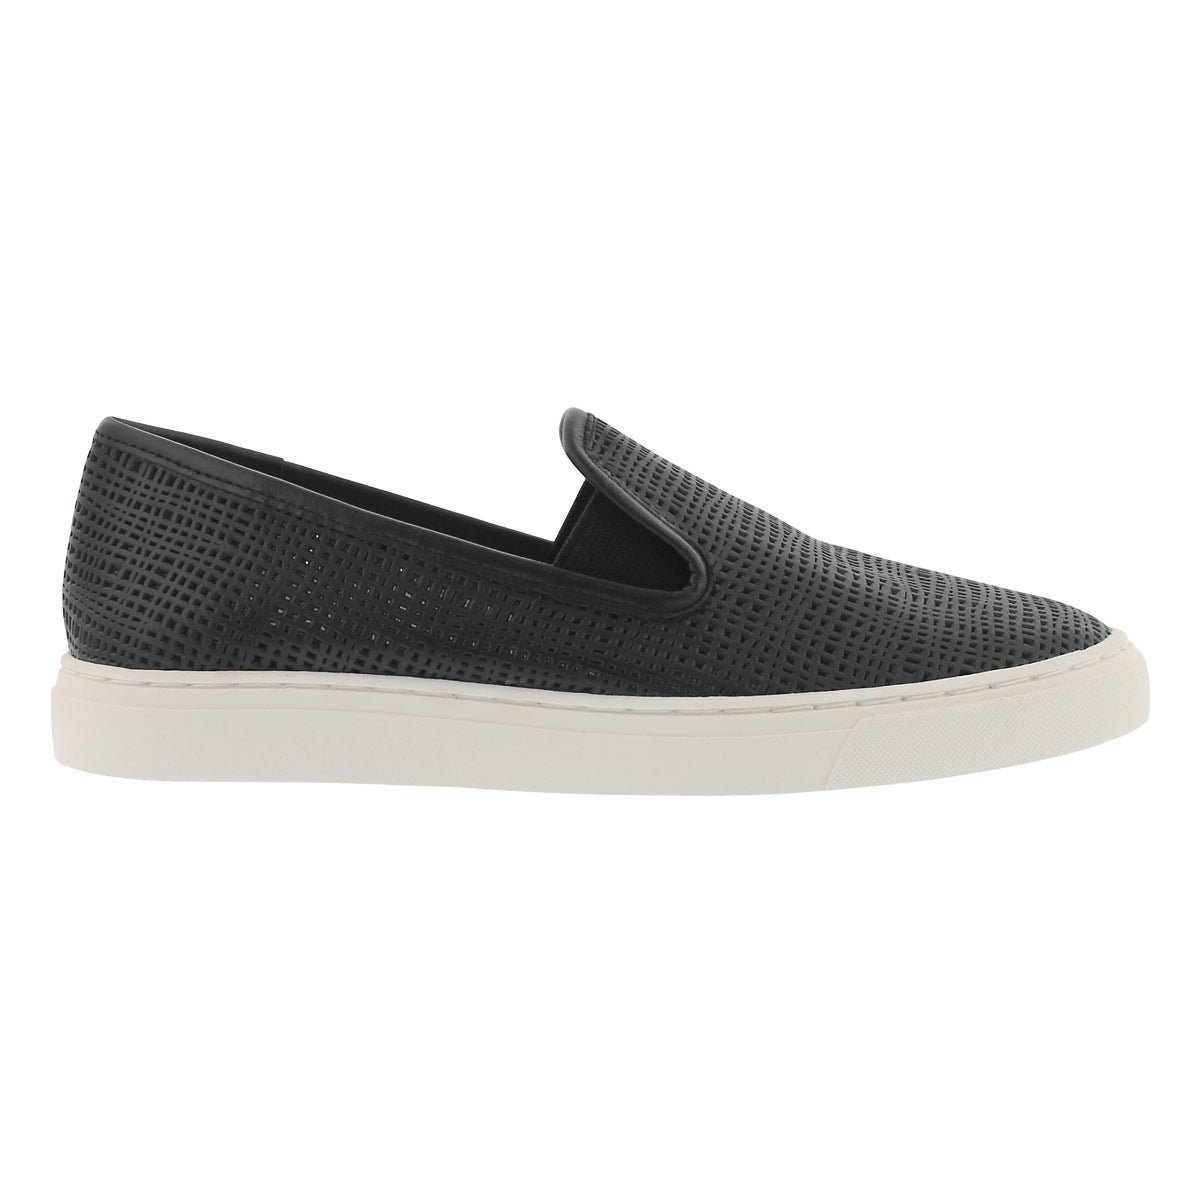 Lds Becker black casual slip on shoe